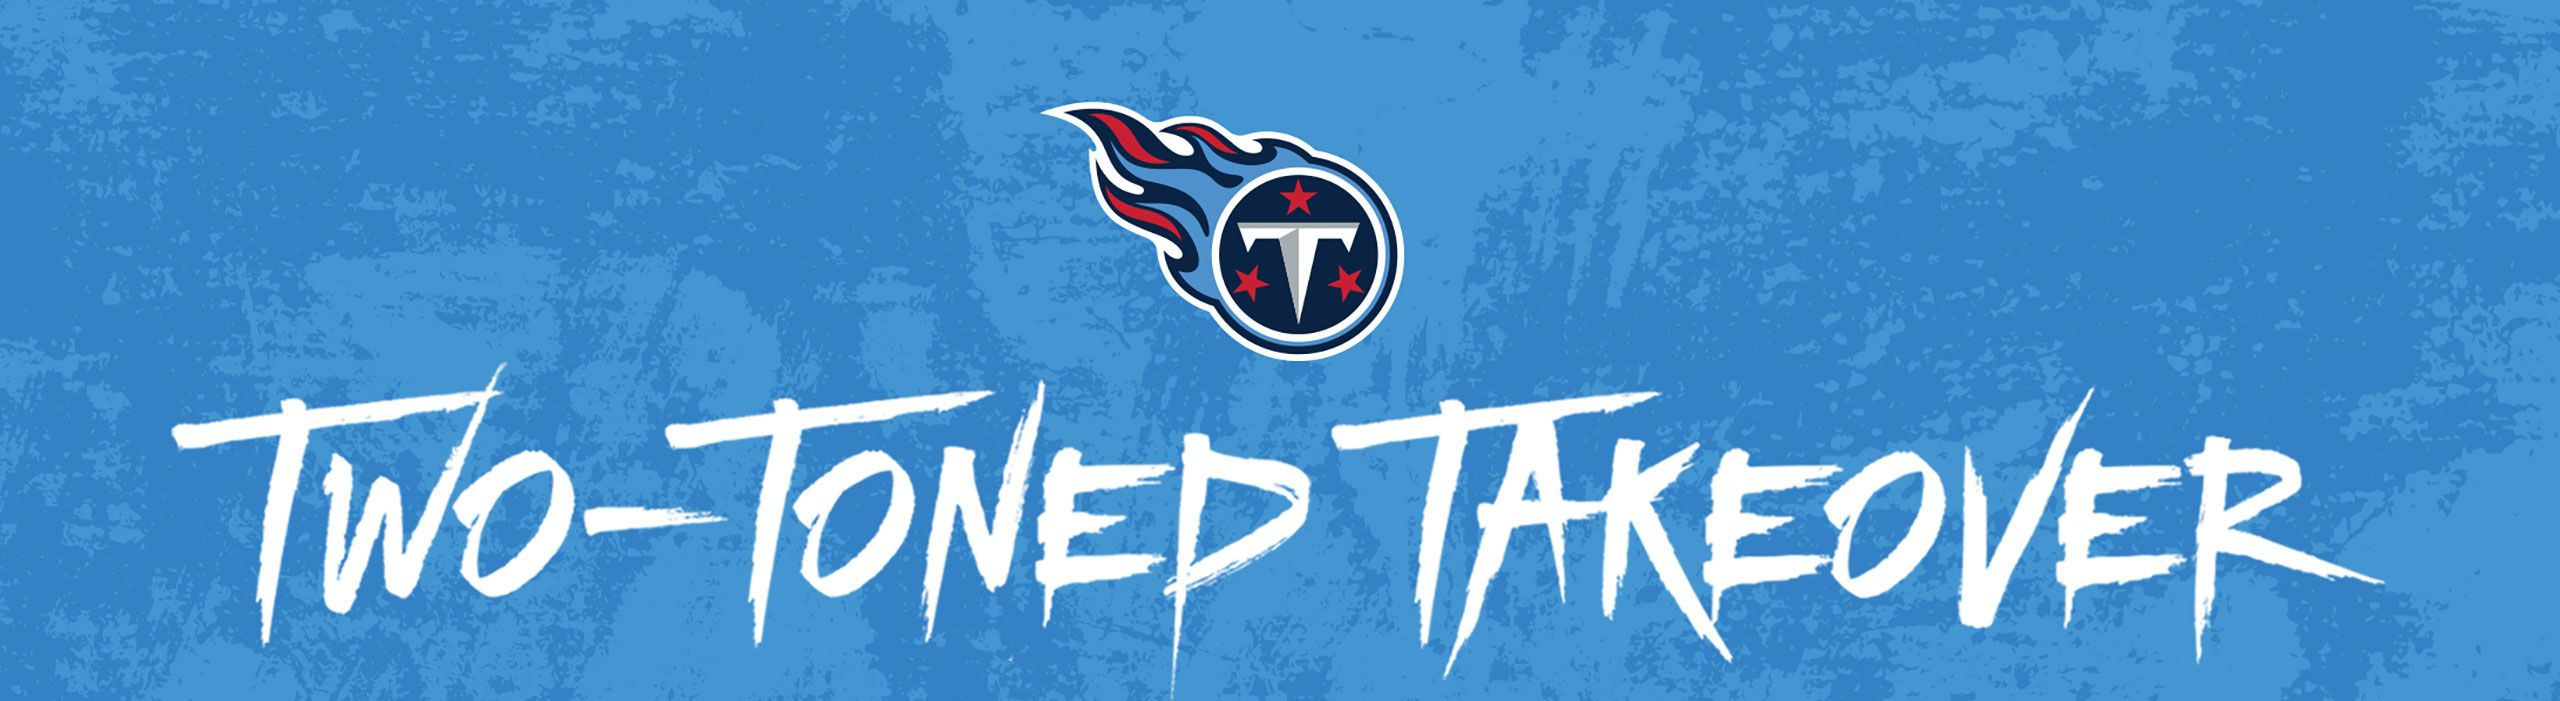 Titans - Two-Toned Takeover